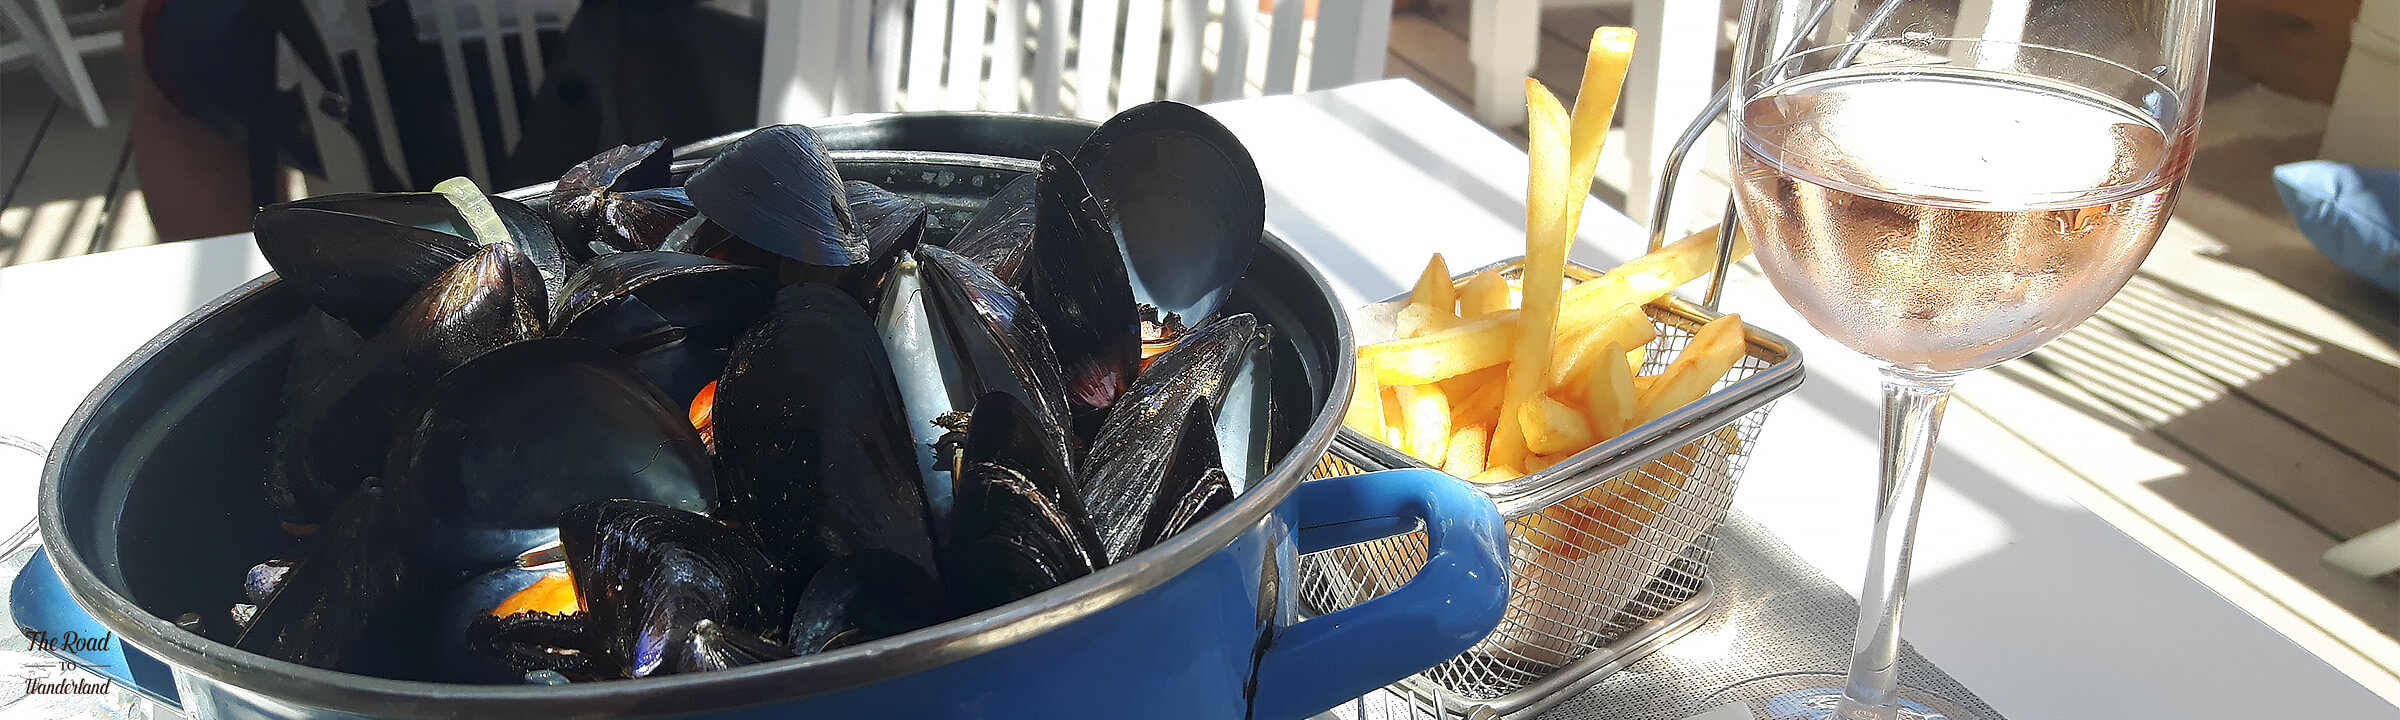 Moules frites at La Ola